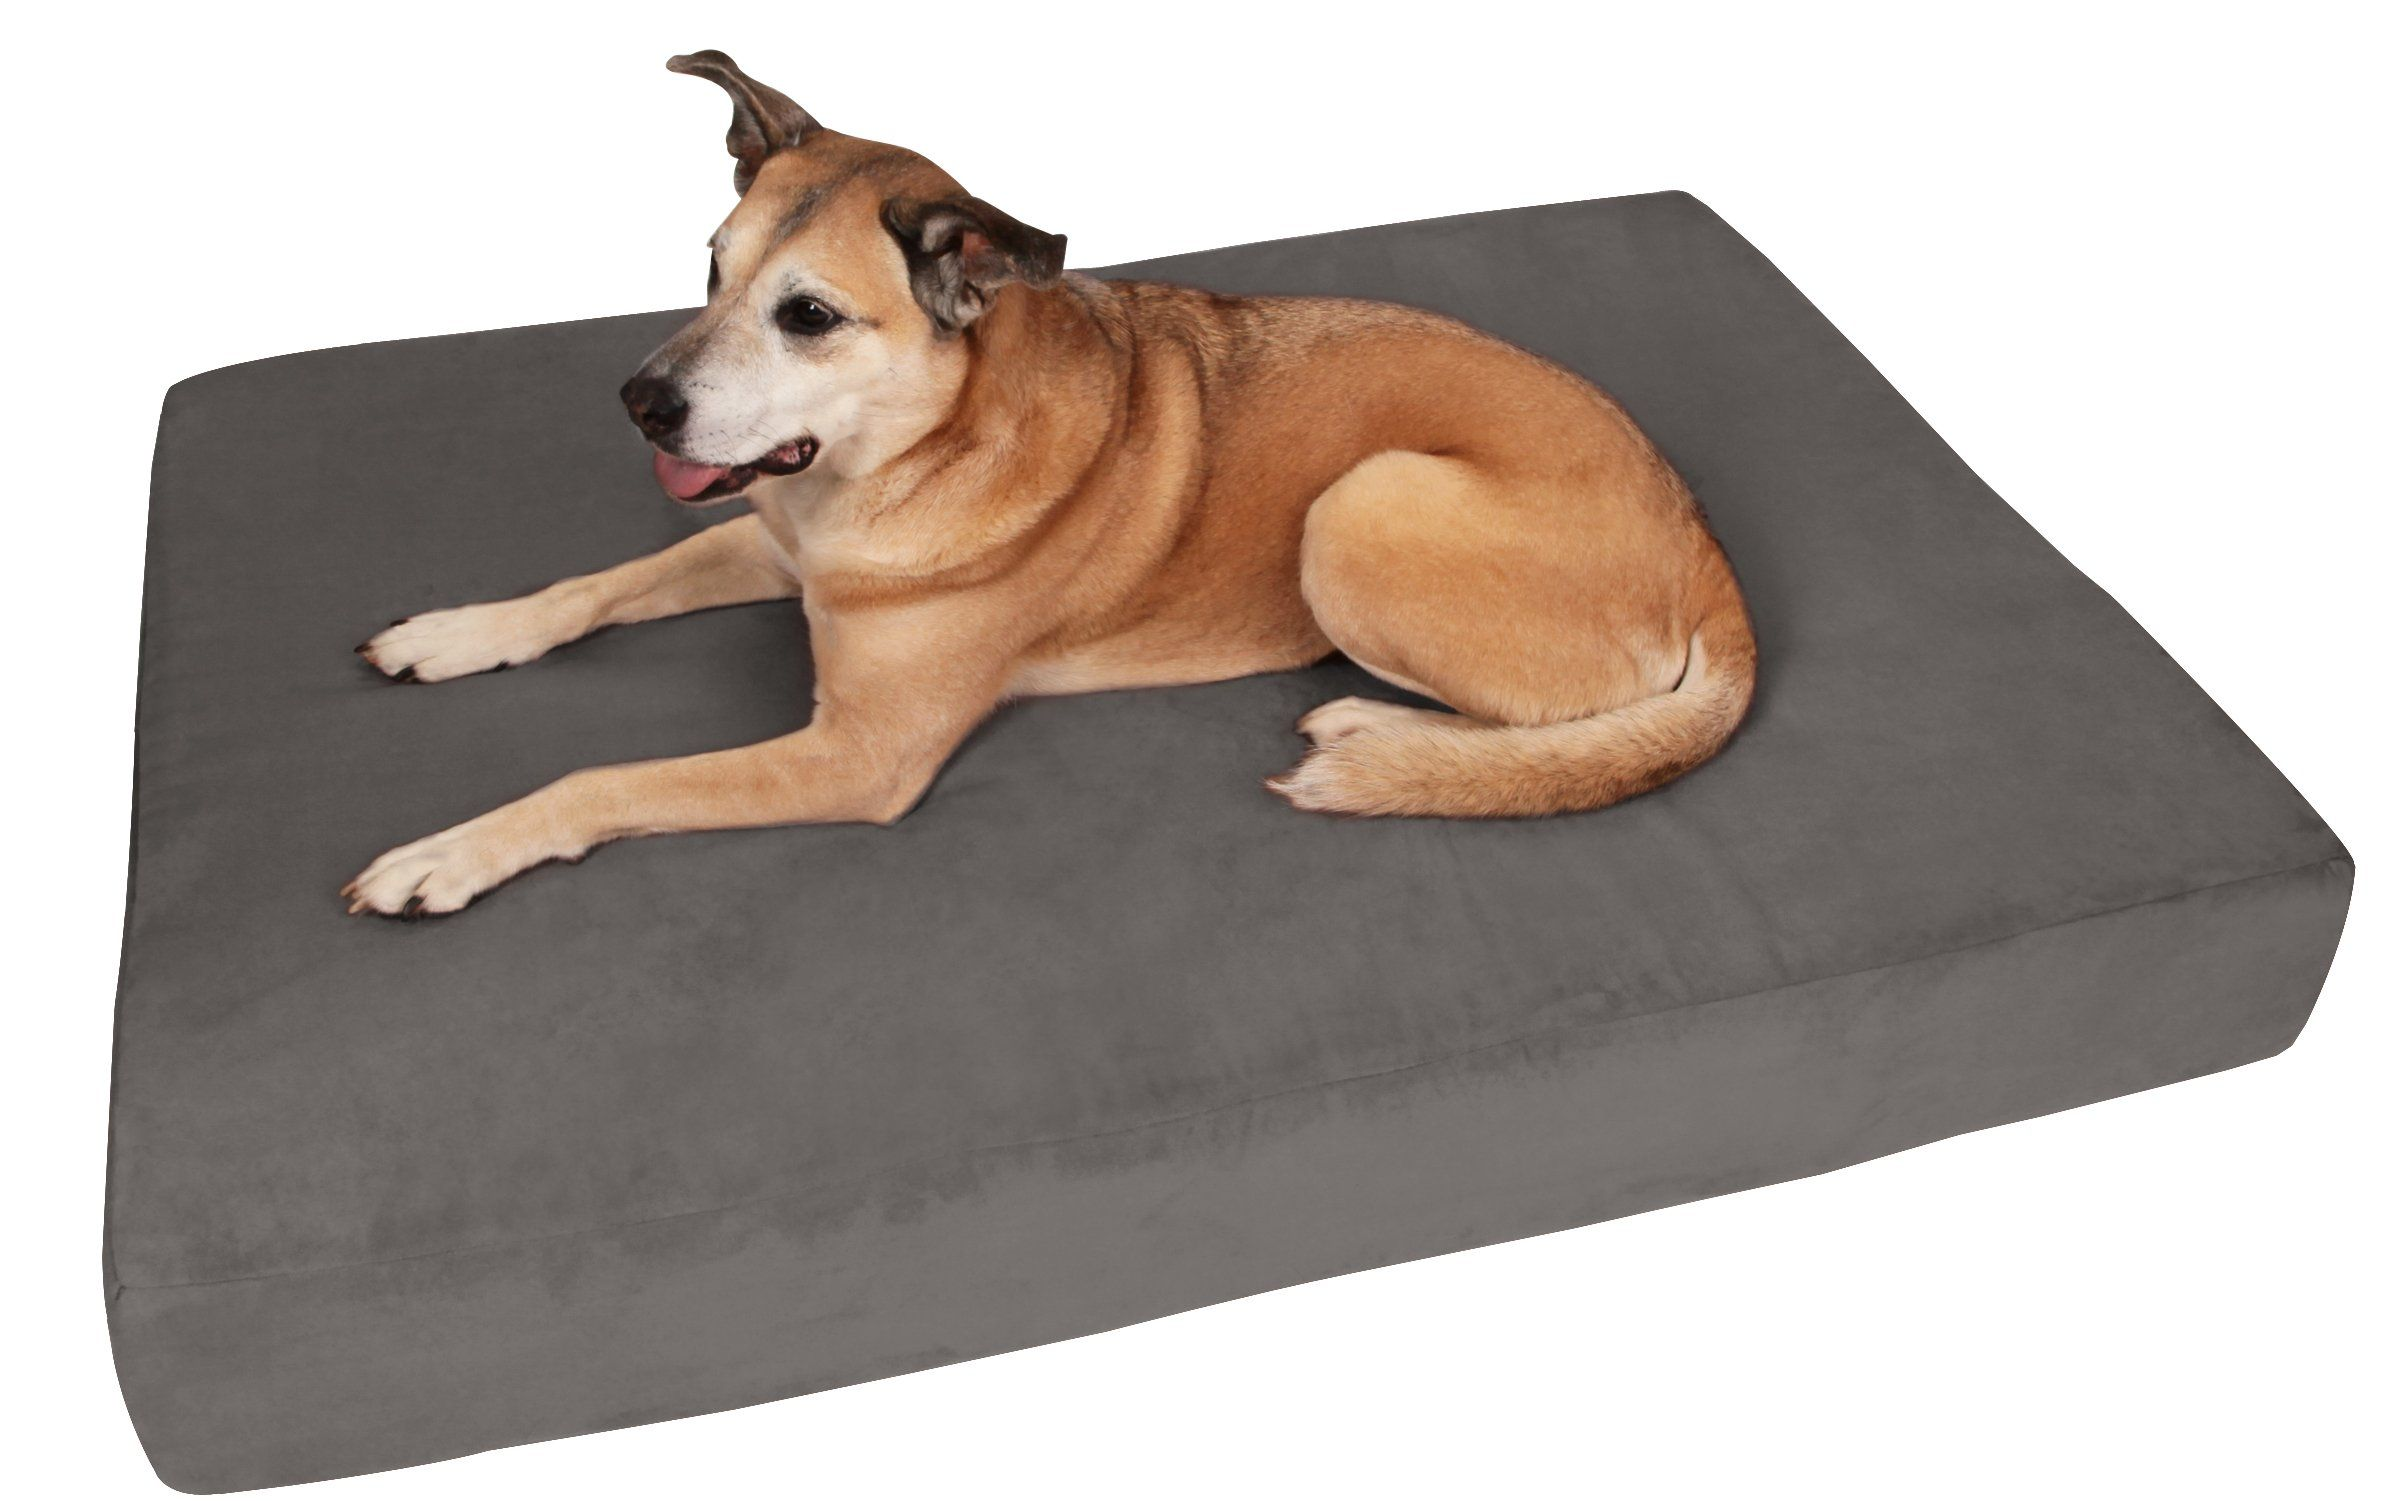 Big Barker 7 Pillow Top Orthopedic Dog Bed Large Size 48 X